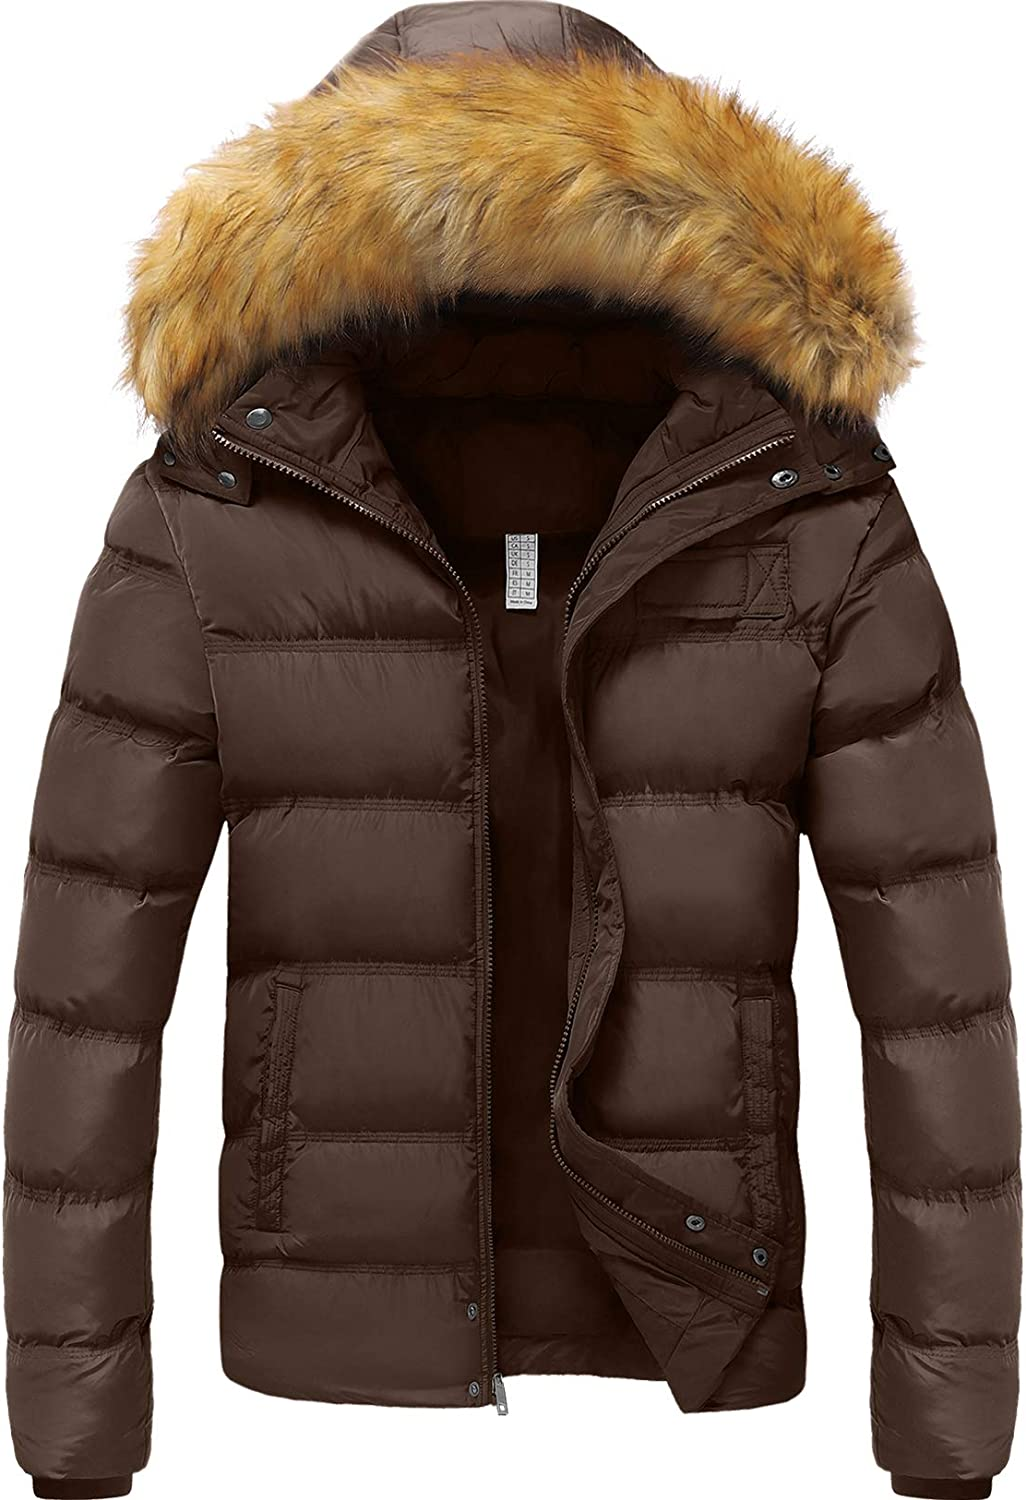 Szory Men's Winter Thicken Cotton Luxury Coat R Puffer with Warm Jacket All items free shipping